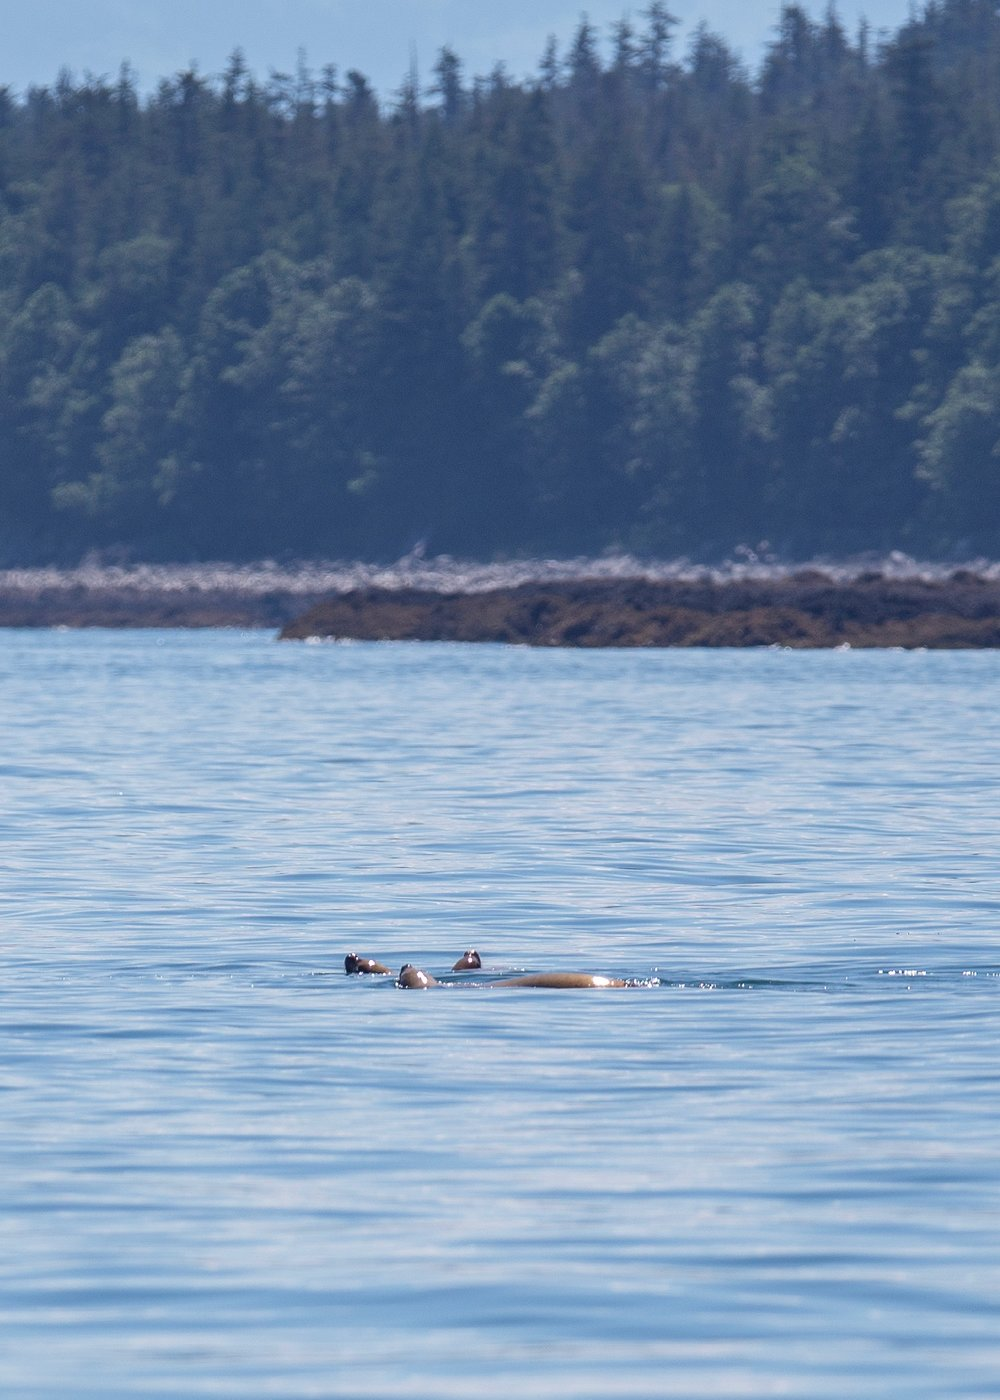 Not far from the orcas a few stellar sea lions were playing in the water. At some point they must have become aware of the orcas, because all of a sudden they made a beeline for shore, splashing and making a racket as they went. It was pretty entertaining - not for them I'm sure!